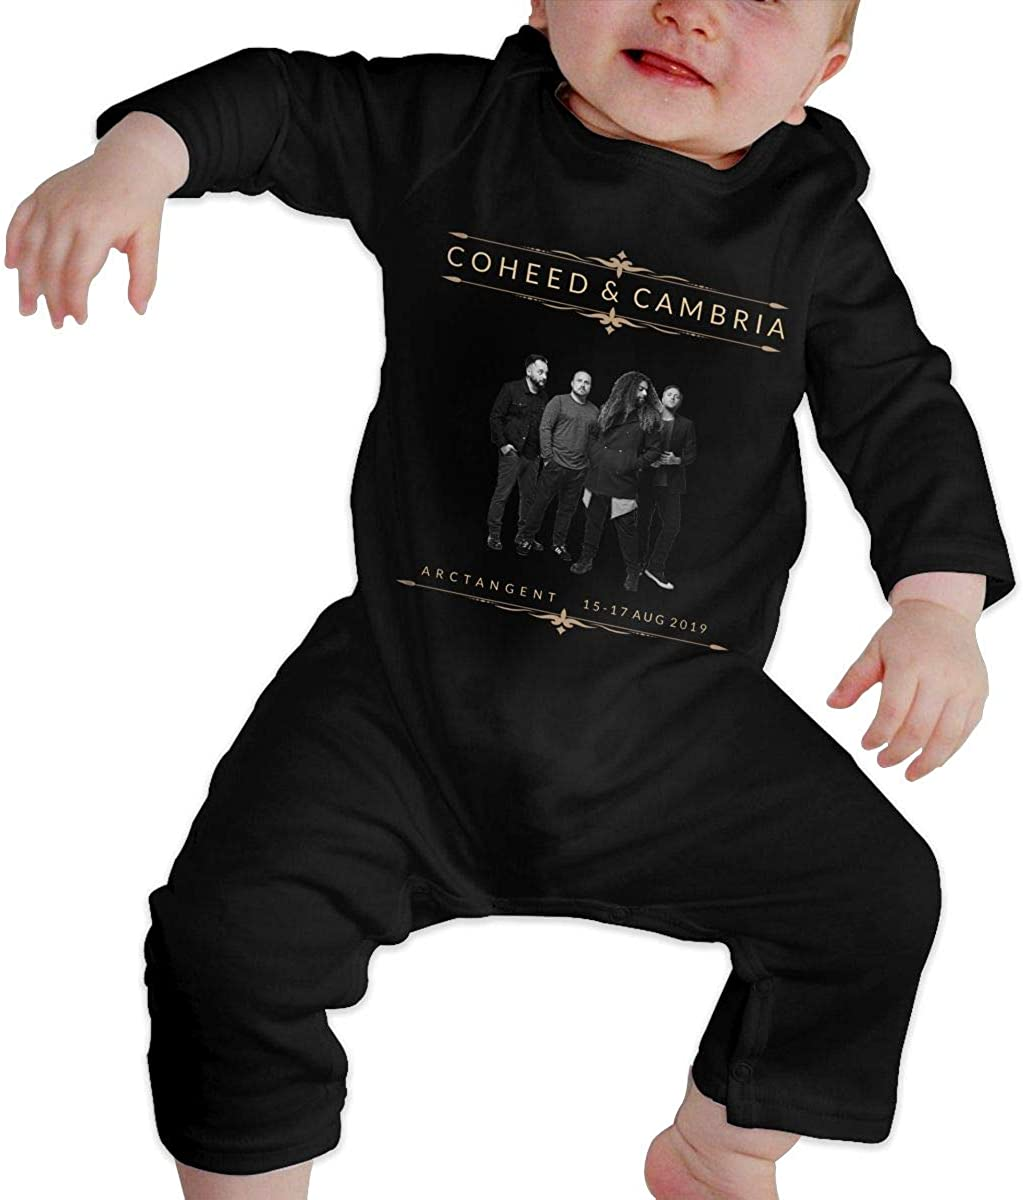 DaigMeng Coheed and Cambria Baby Boy Baby Girl Jumpsuit Cotton Jumpsuit Baby Crawler Long Sleeve Jumpsuit Black